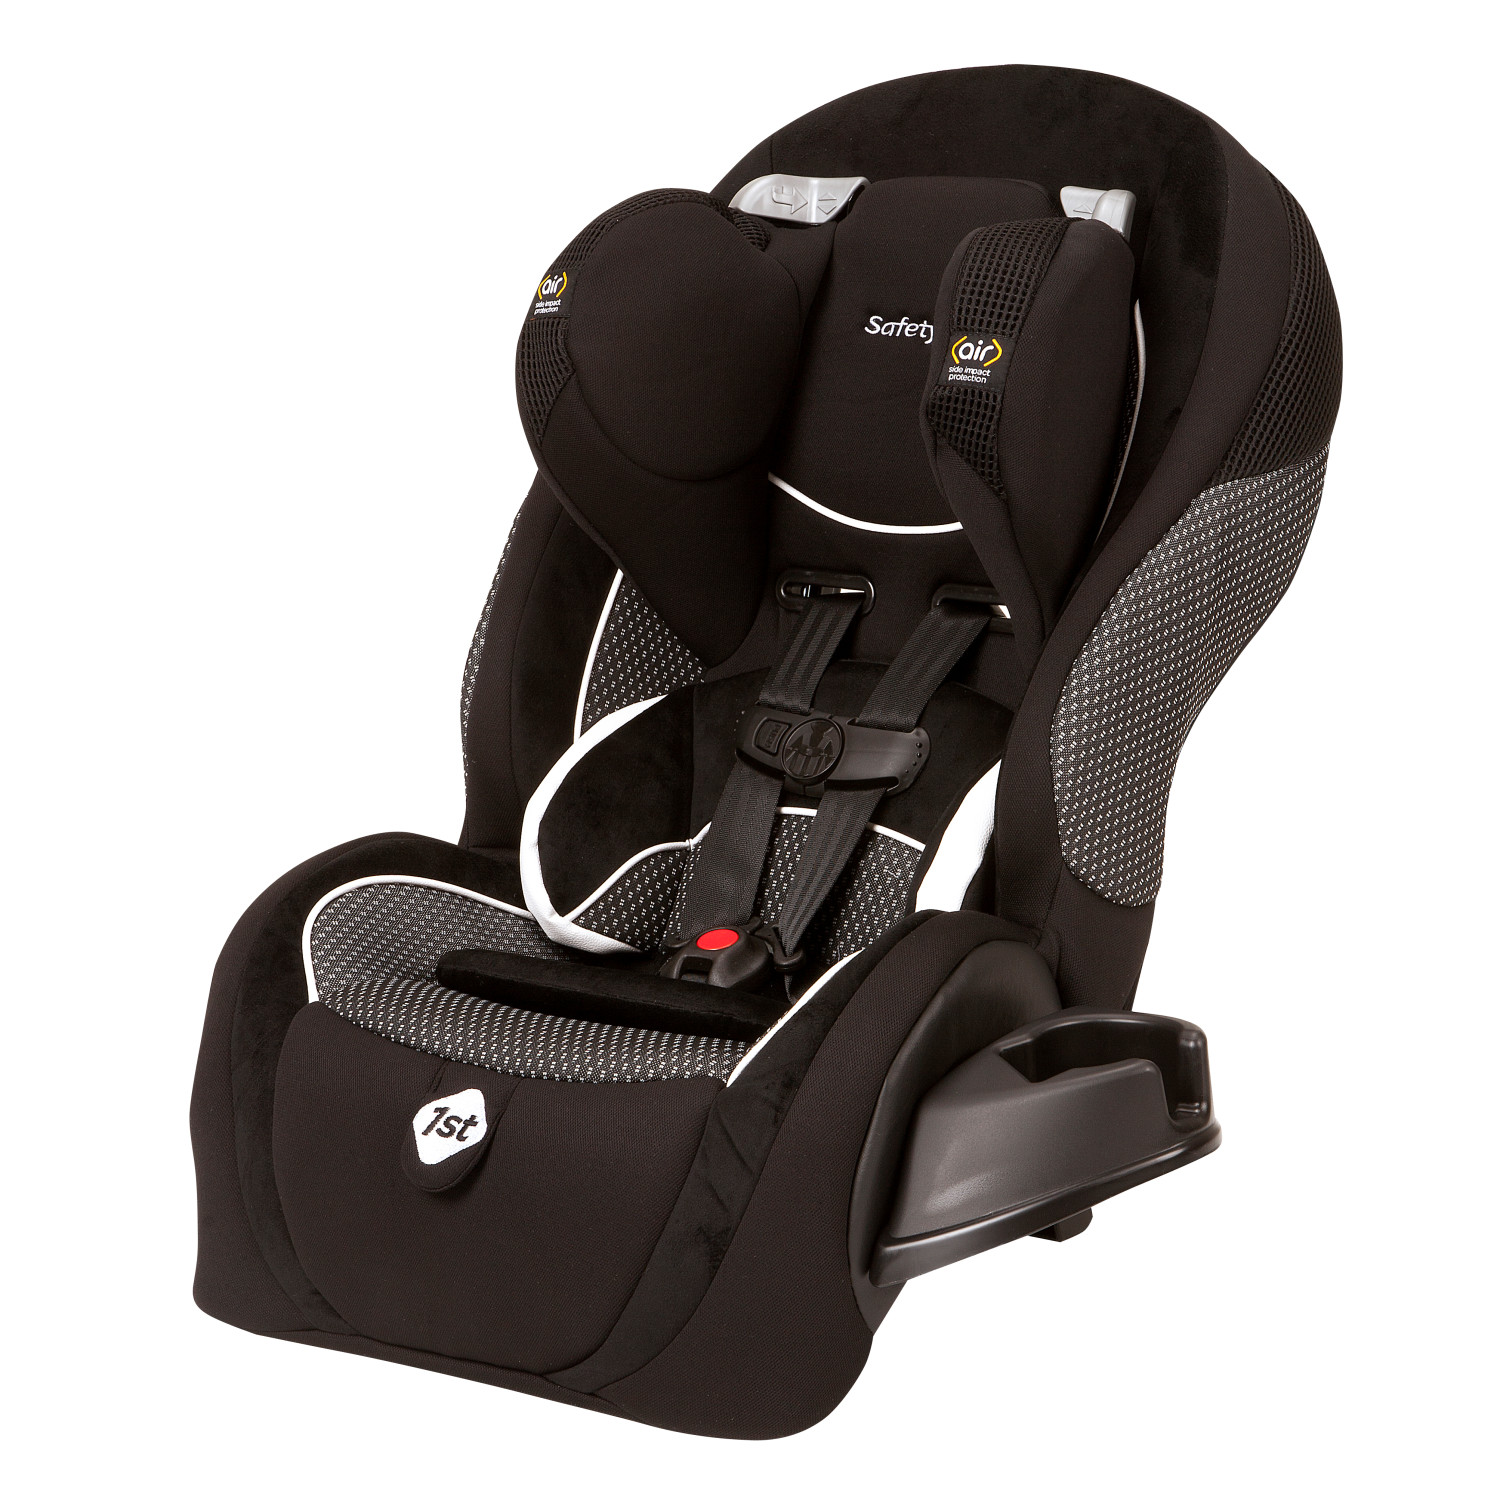 Safety 1st 2015 Complete Air 65 Convertible Baby Car Seat Cc110dfh Corabelle